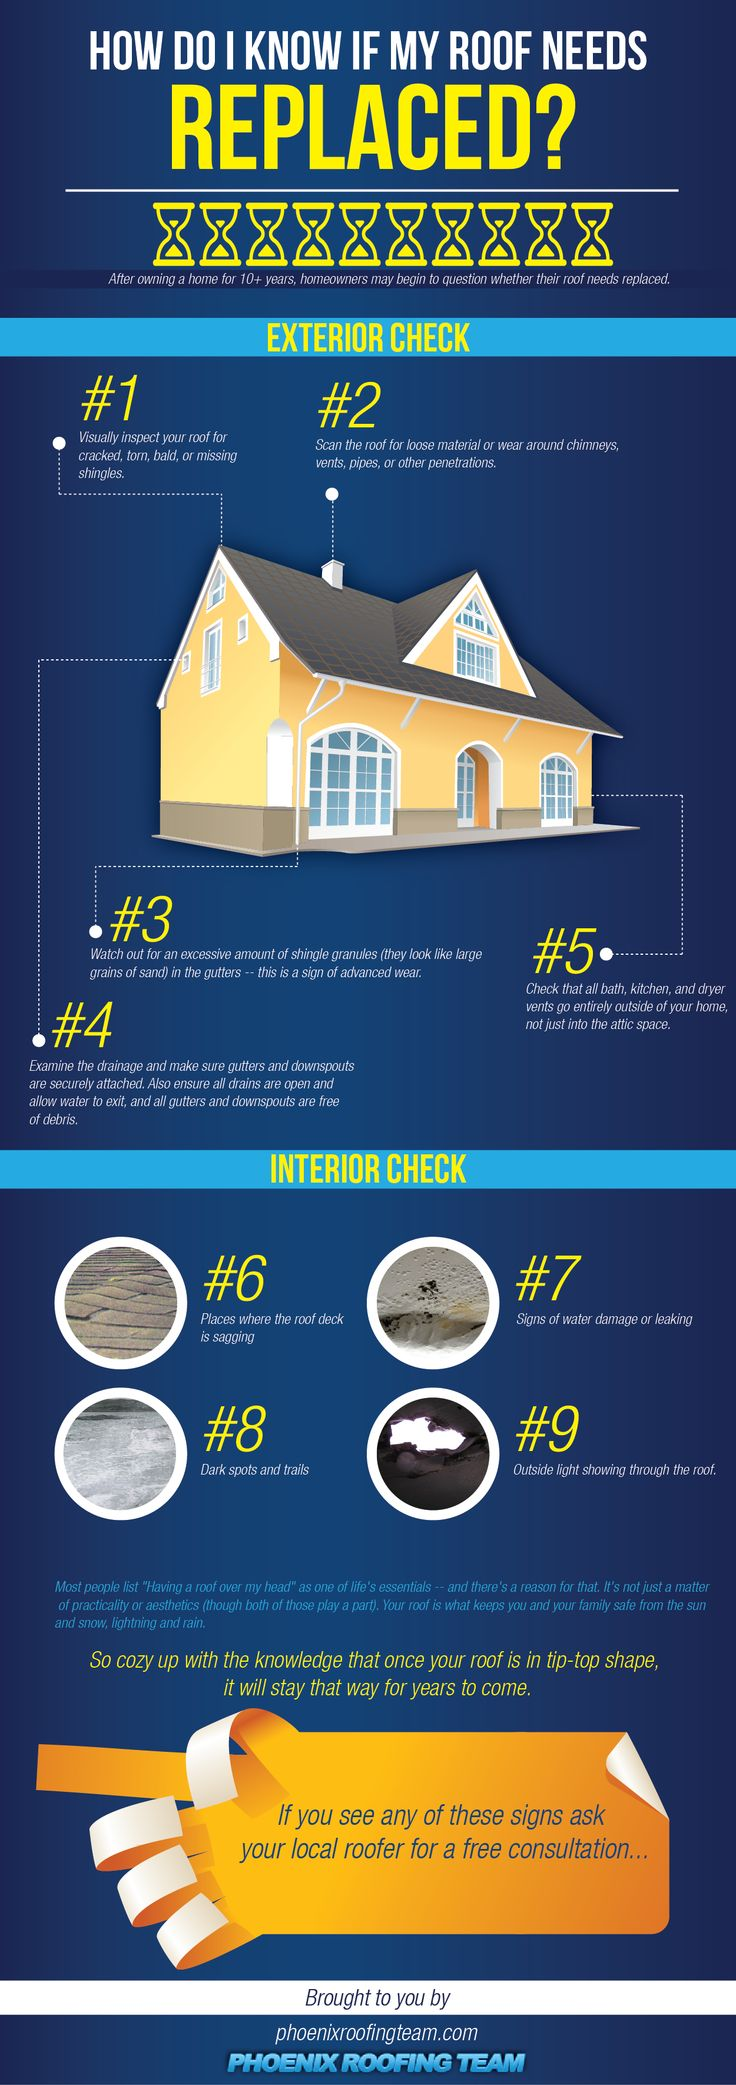 55 Best Roofing Tips Images On Pinterest